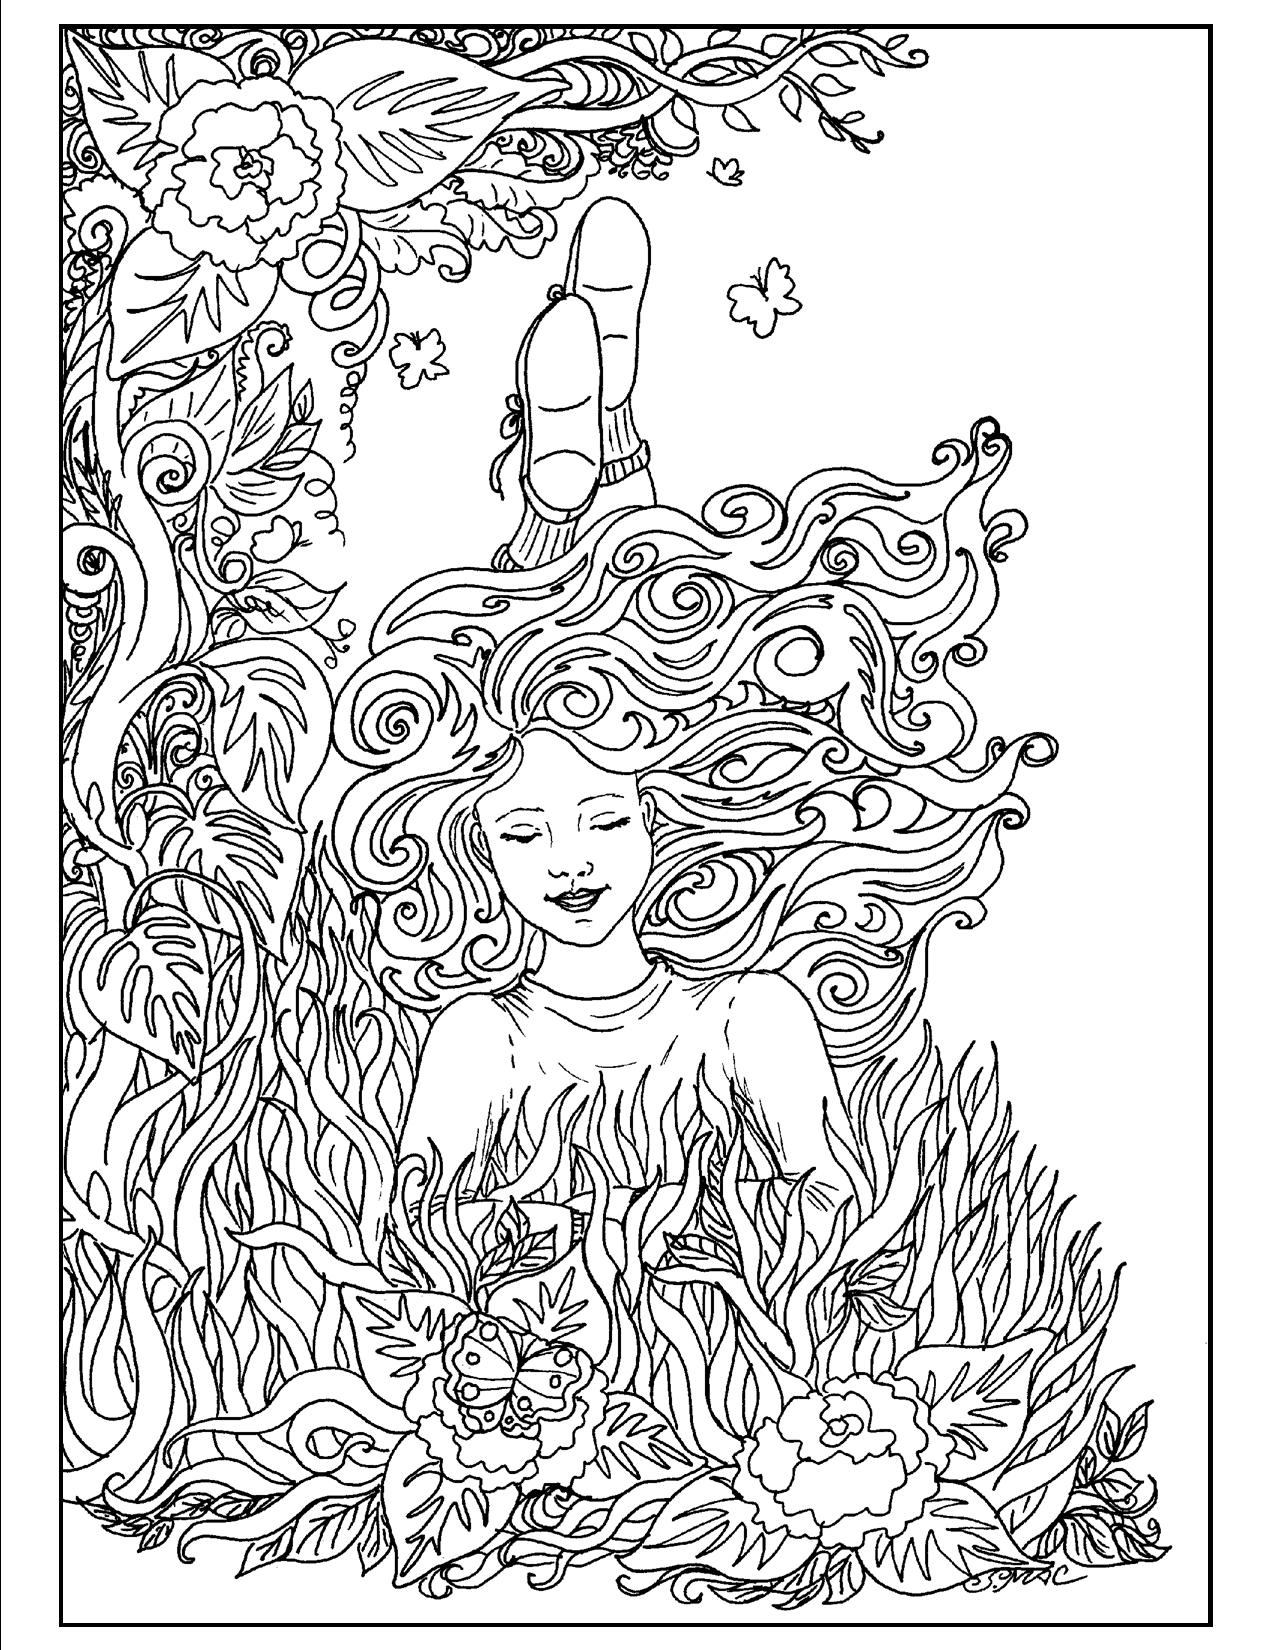 Art Nouveau Coloring Pages | S.Mac's Place to Be